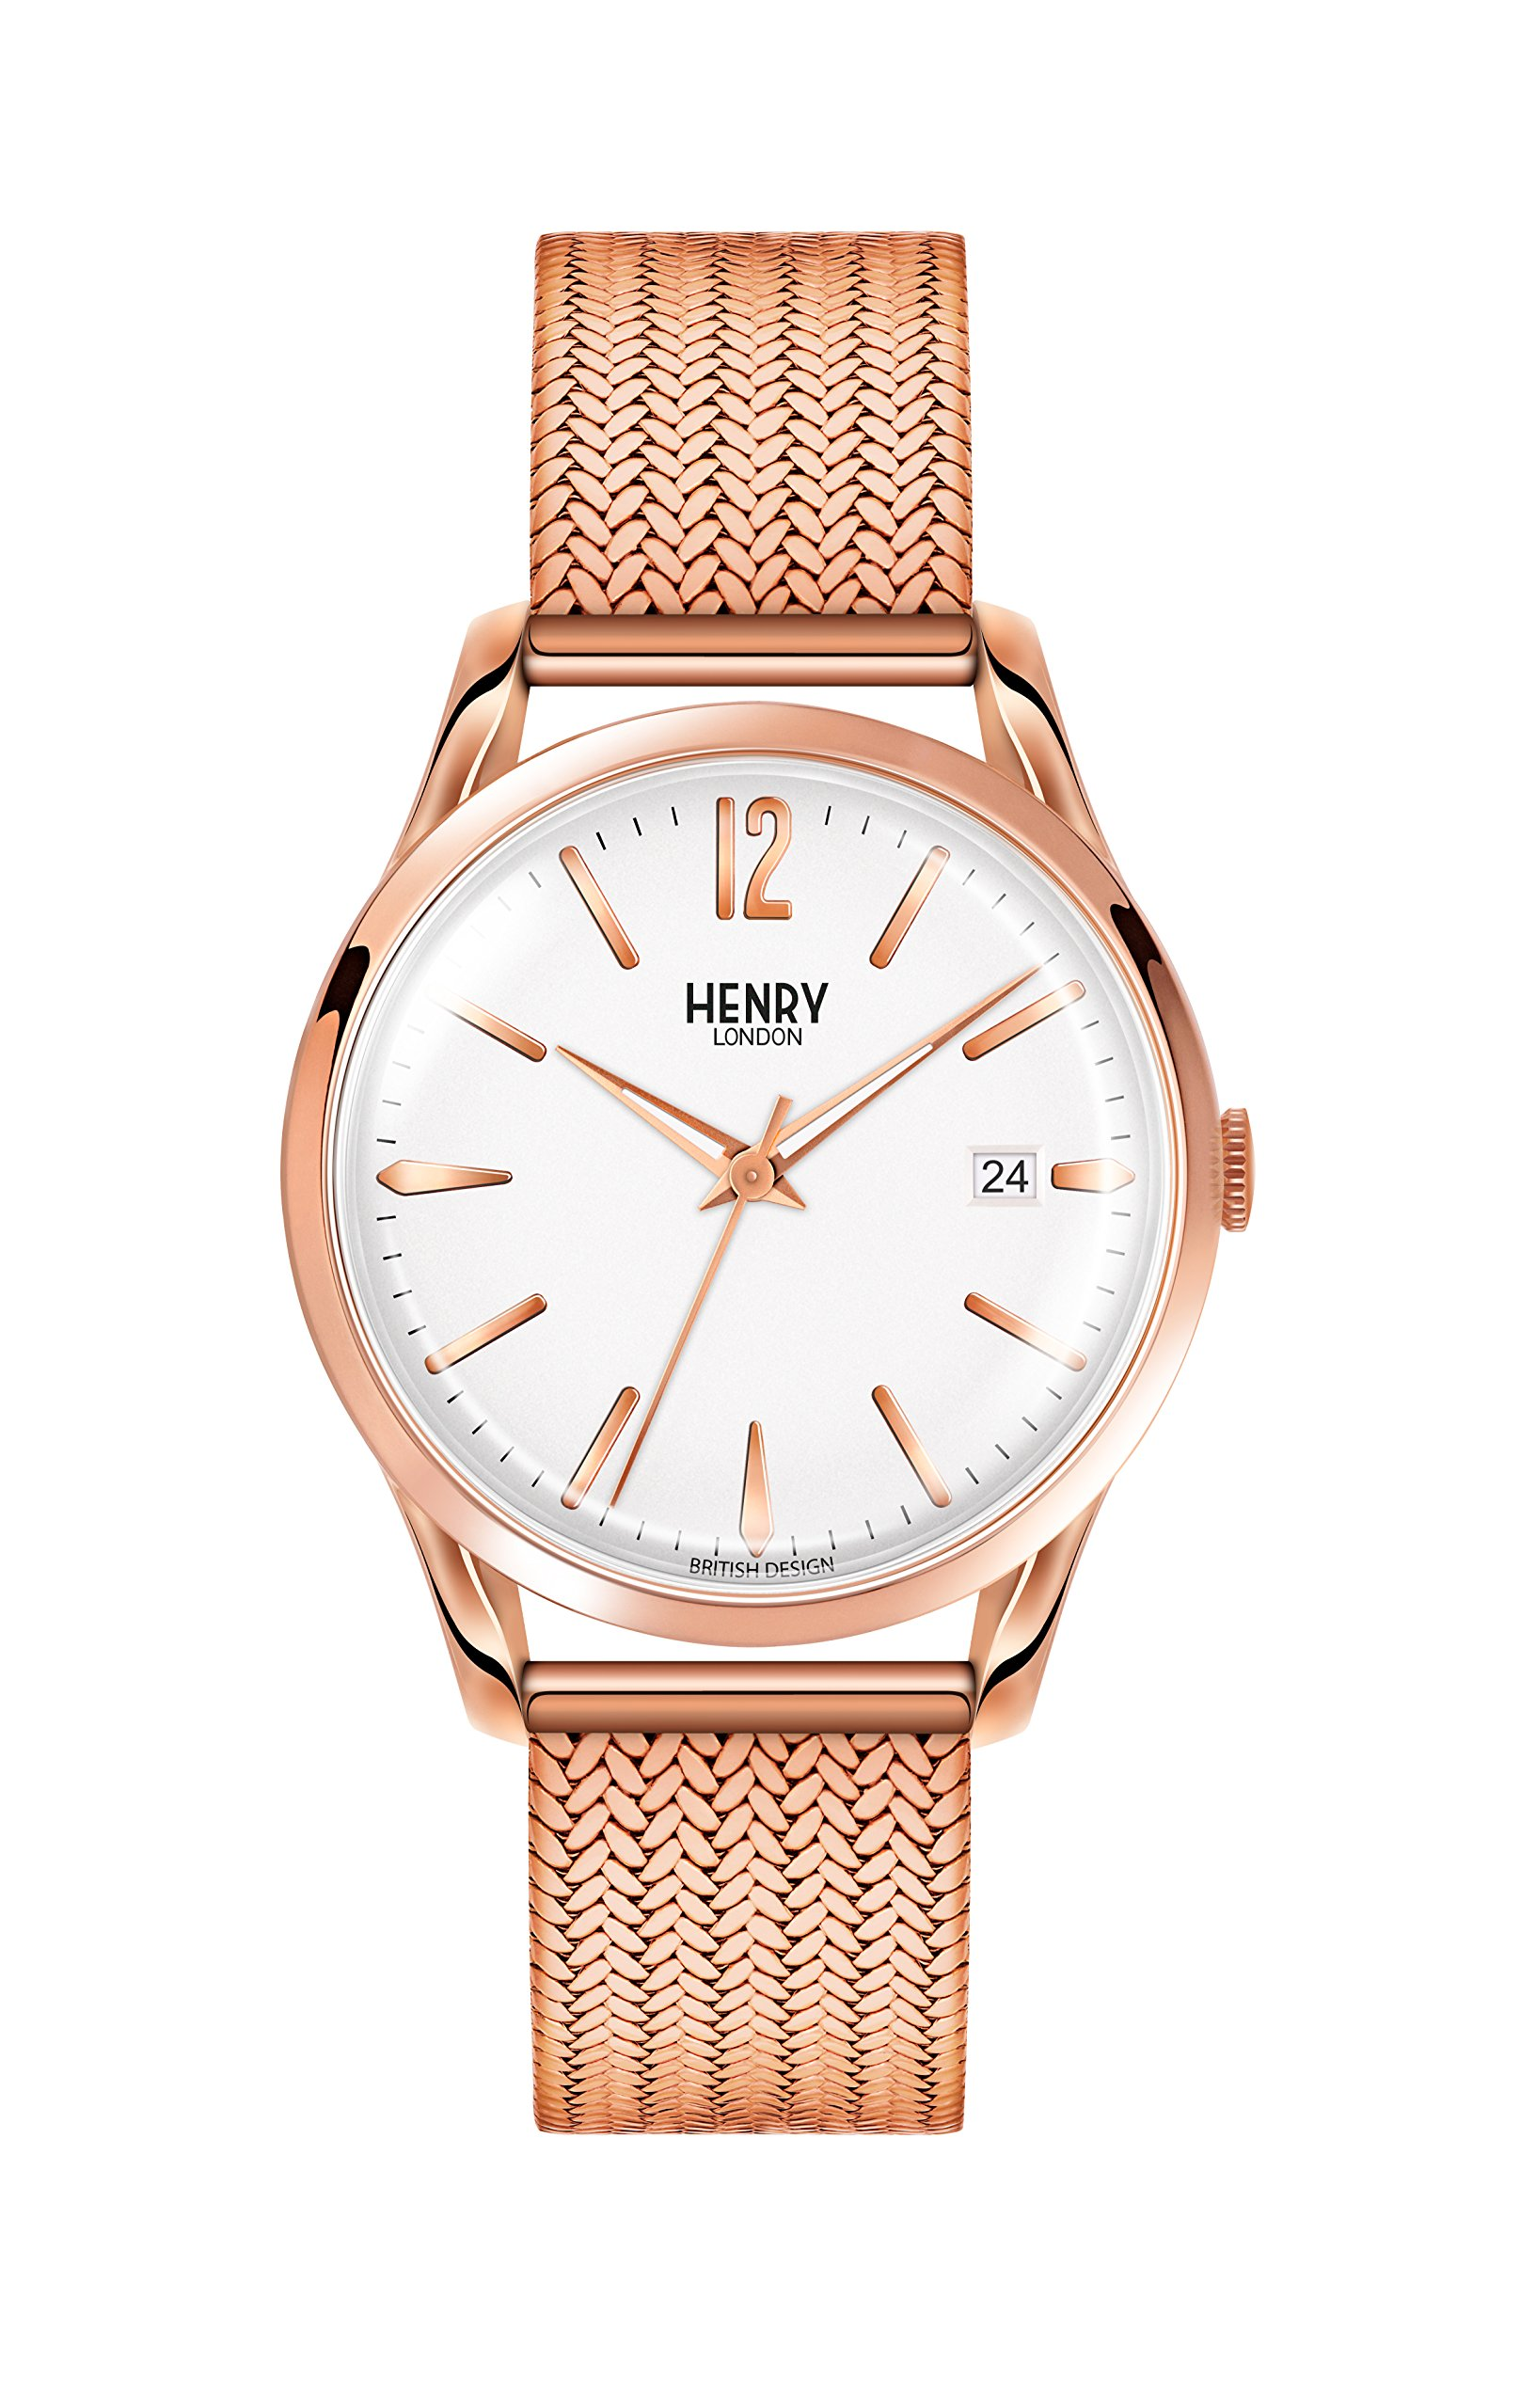 Henry London Unisex Richmond Quartz Watch with White Dial Analogue Display and Rose Gold Stainless Steel Bracelet